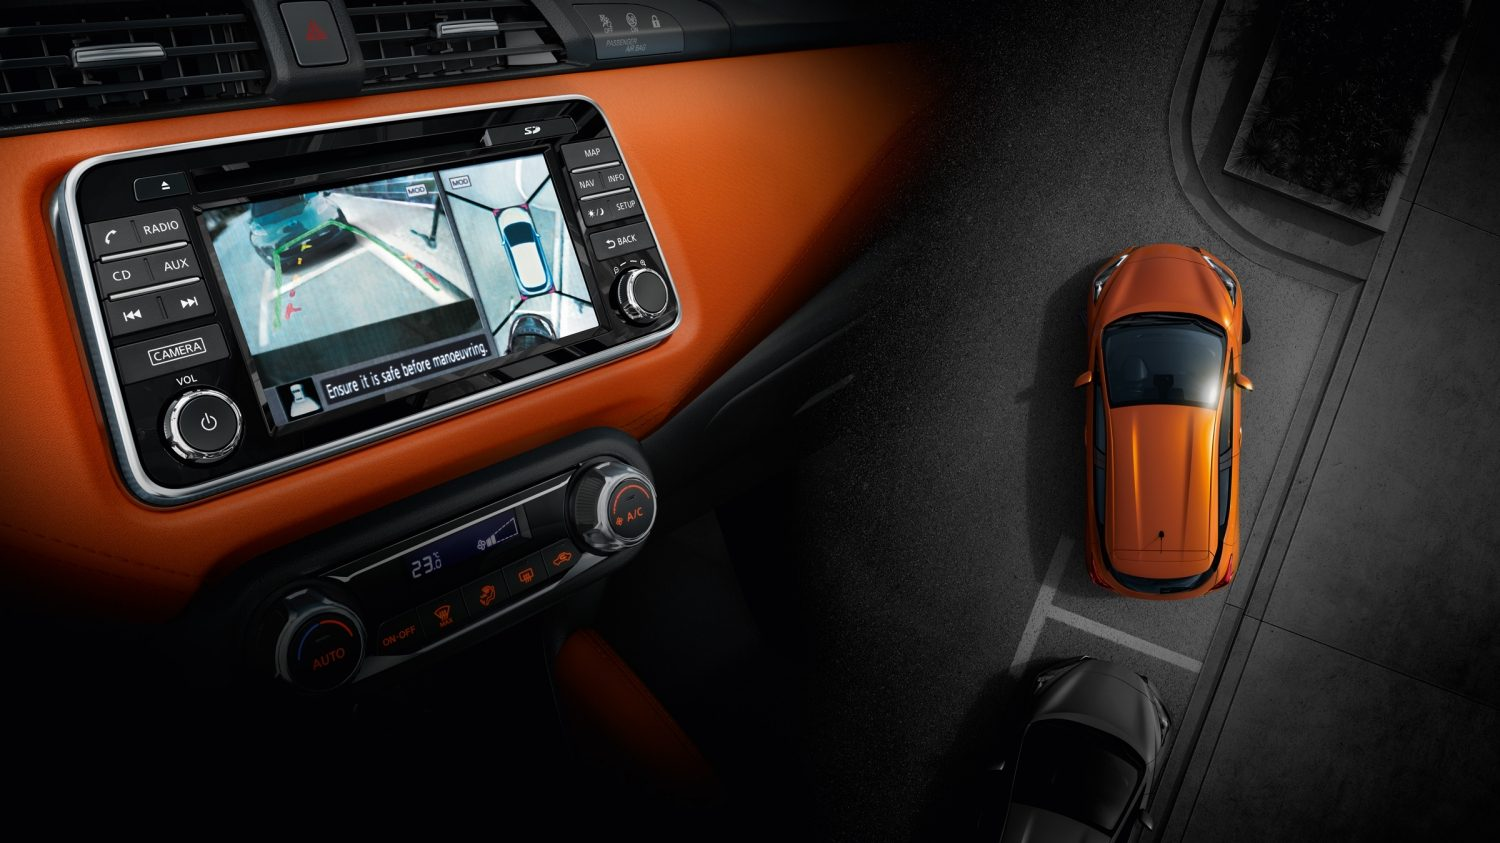 Nissan MICRA: Intelligent Mobility